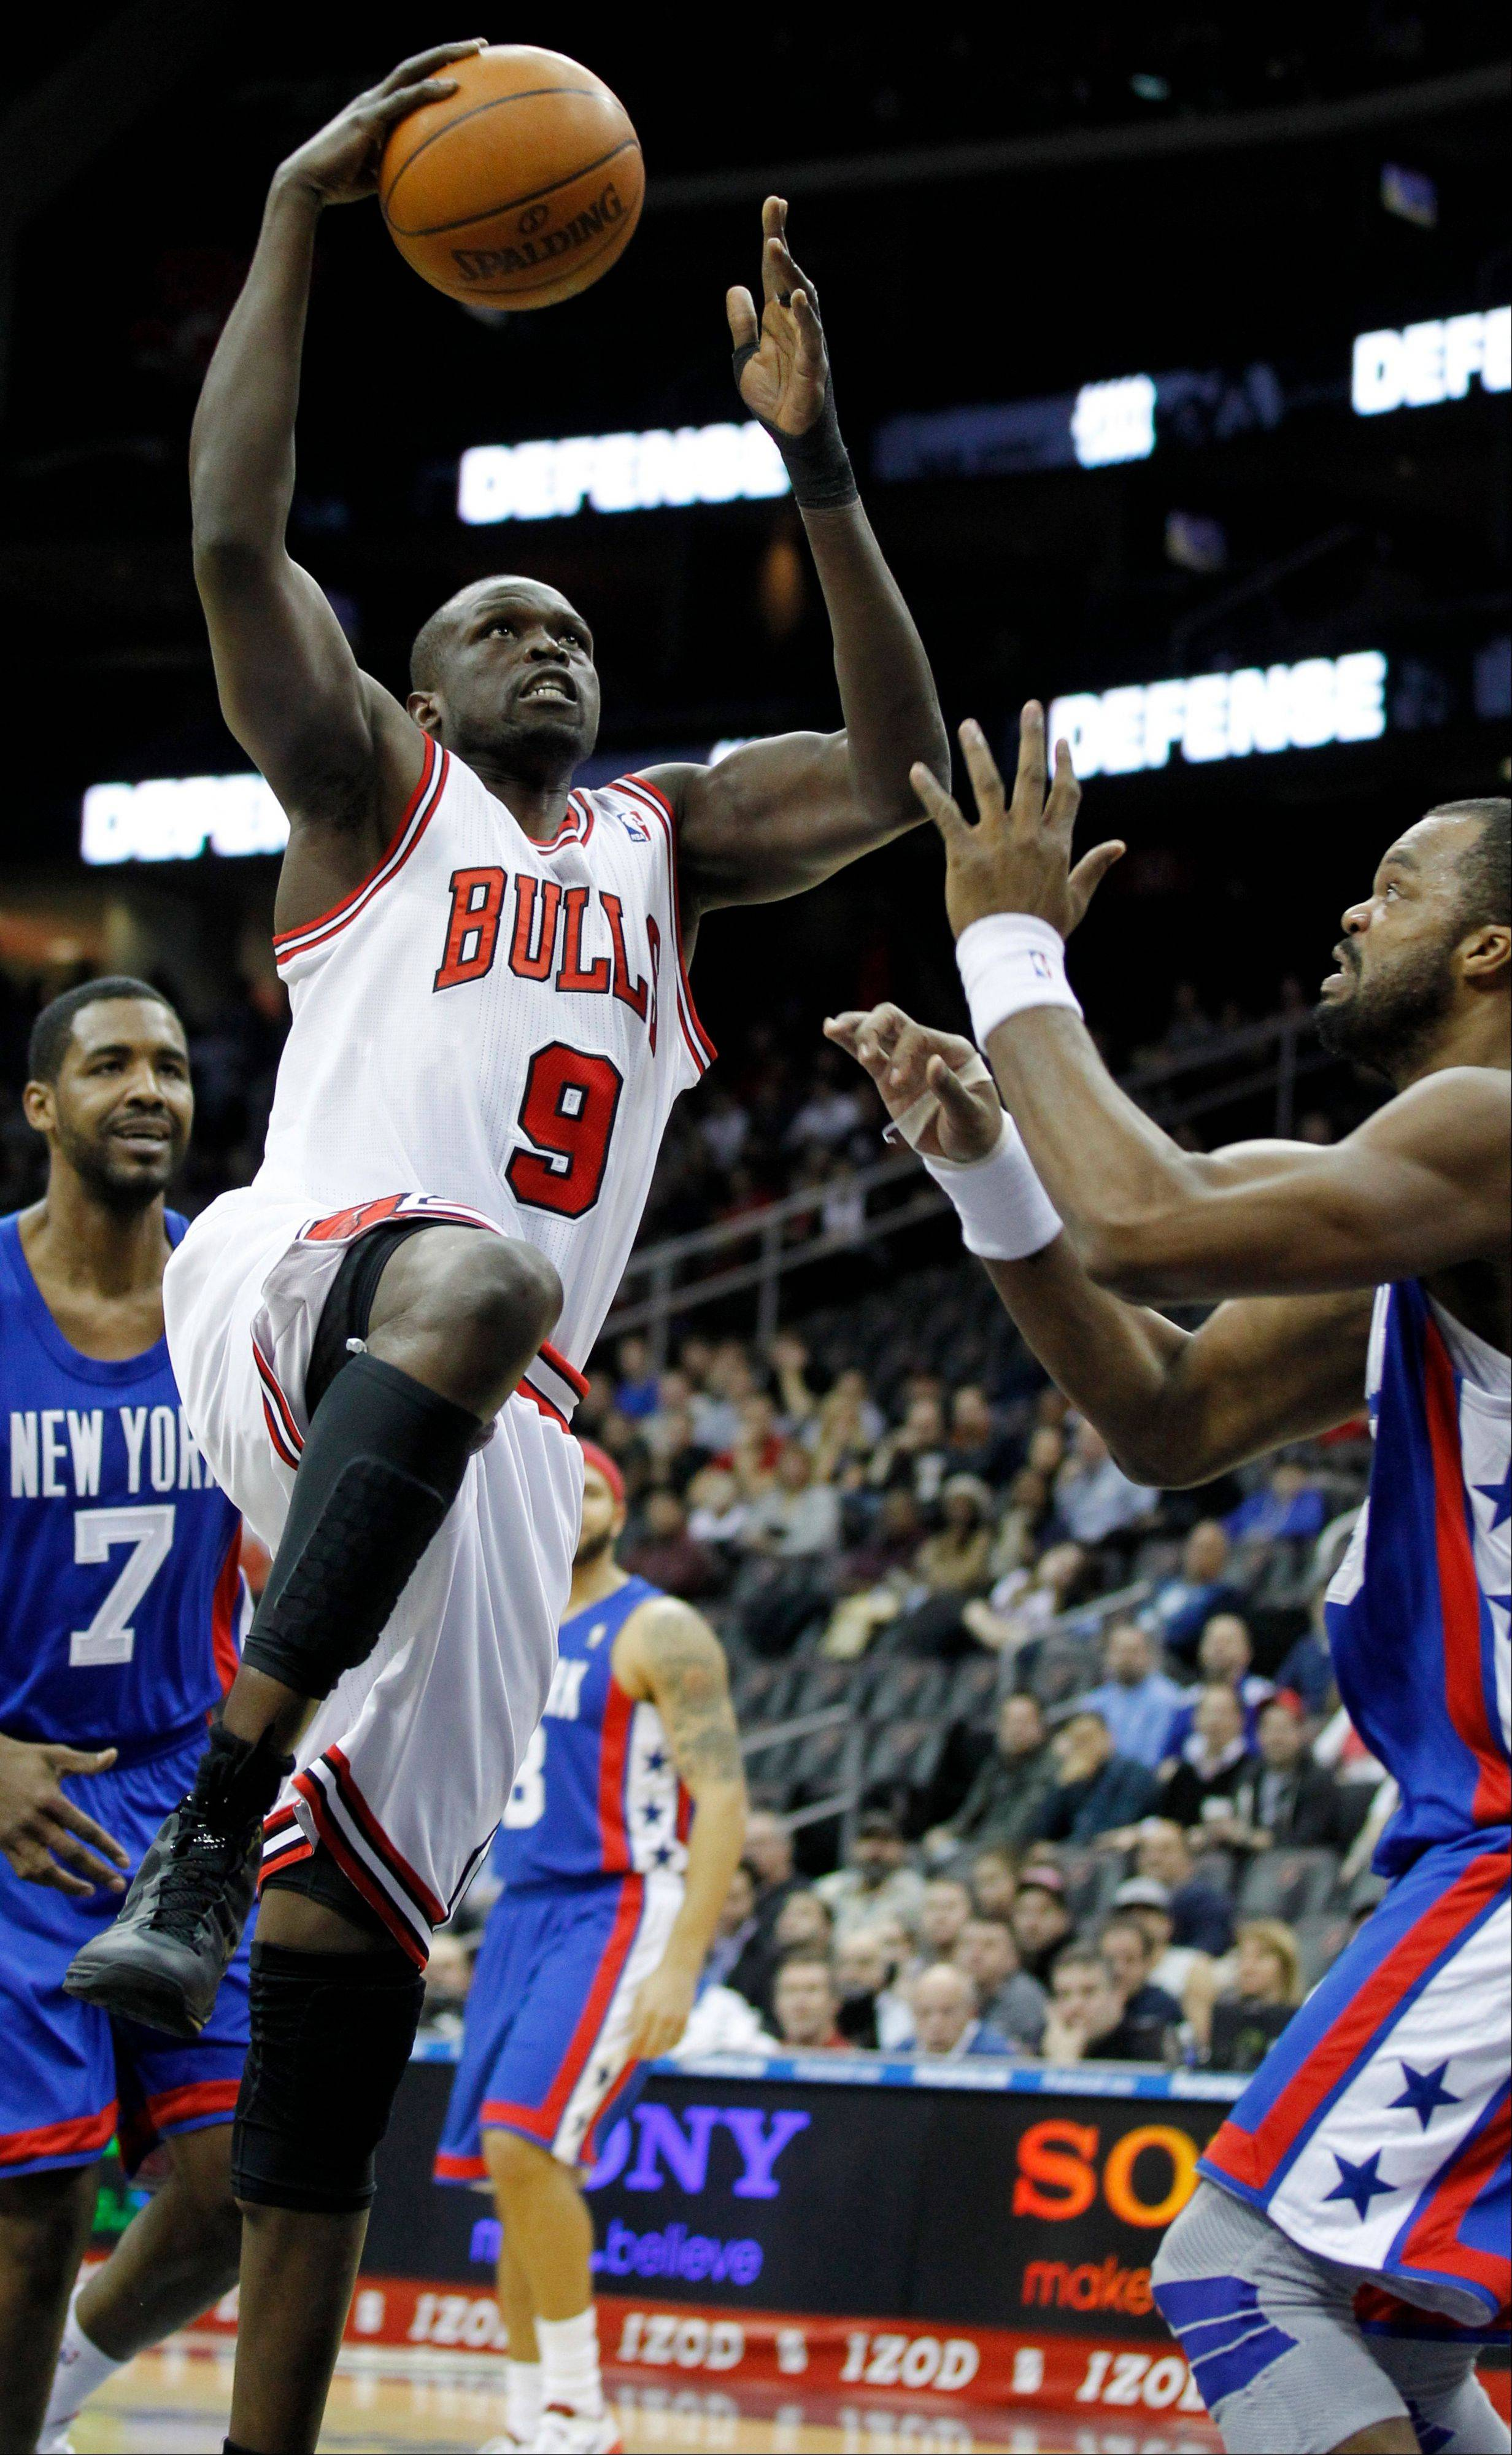 Bulls' Deng named to all-star team